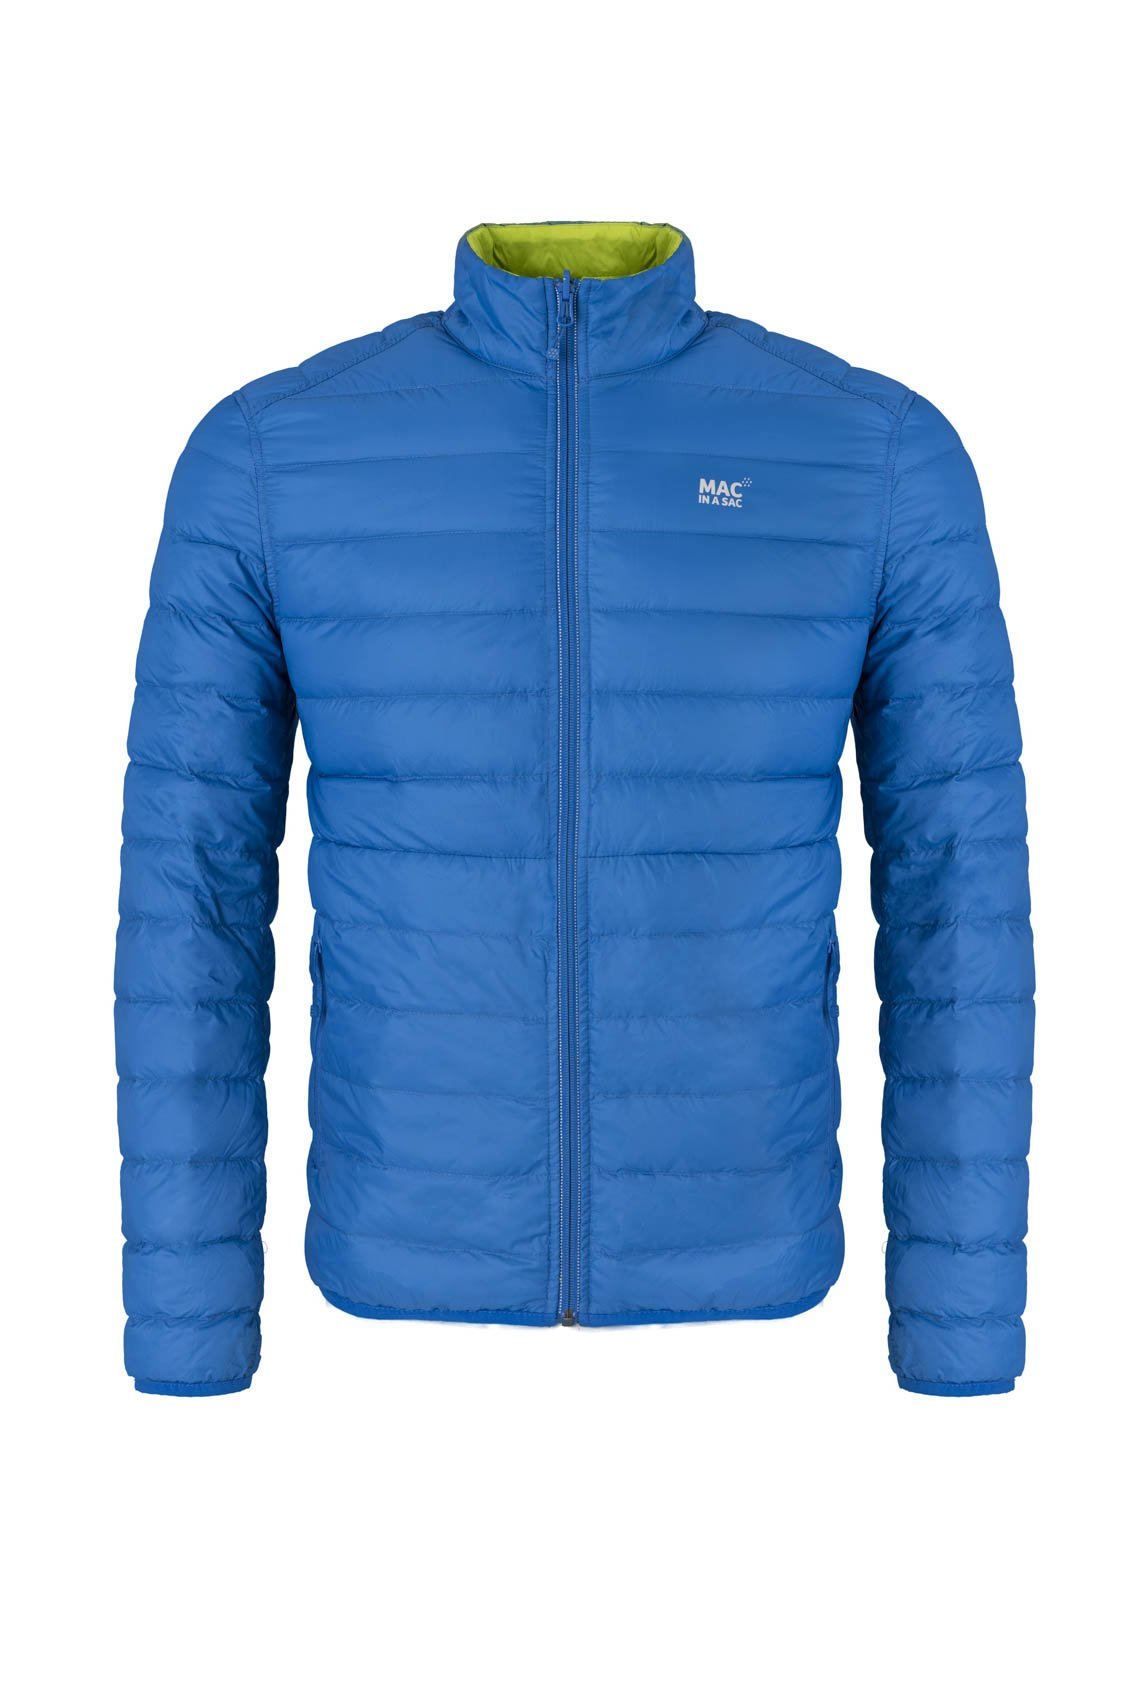 57f7874959a Polar Mens Down Jacket - Insulated & Packable | Mac in a Sac